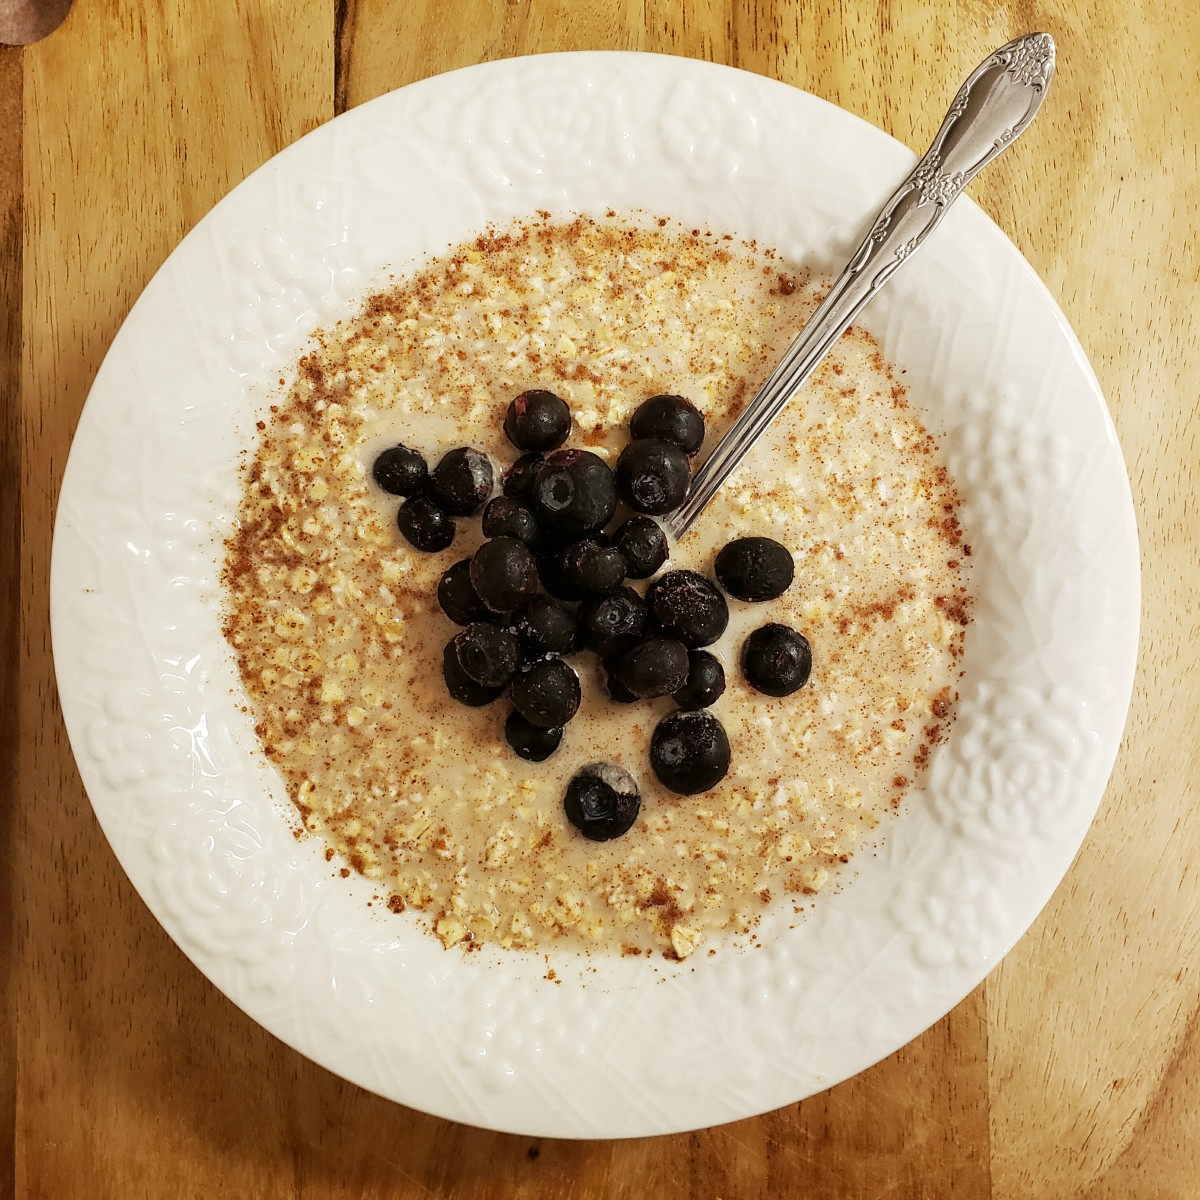 Cold oats with blueberries and almond milk